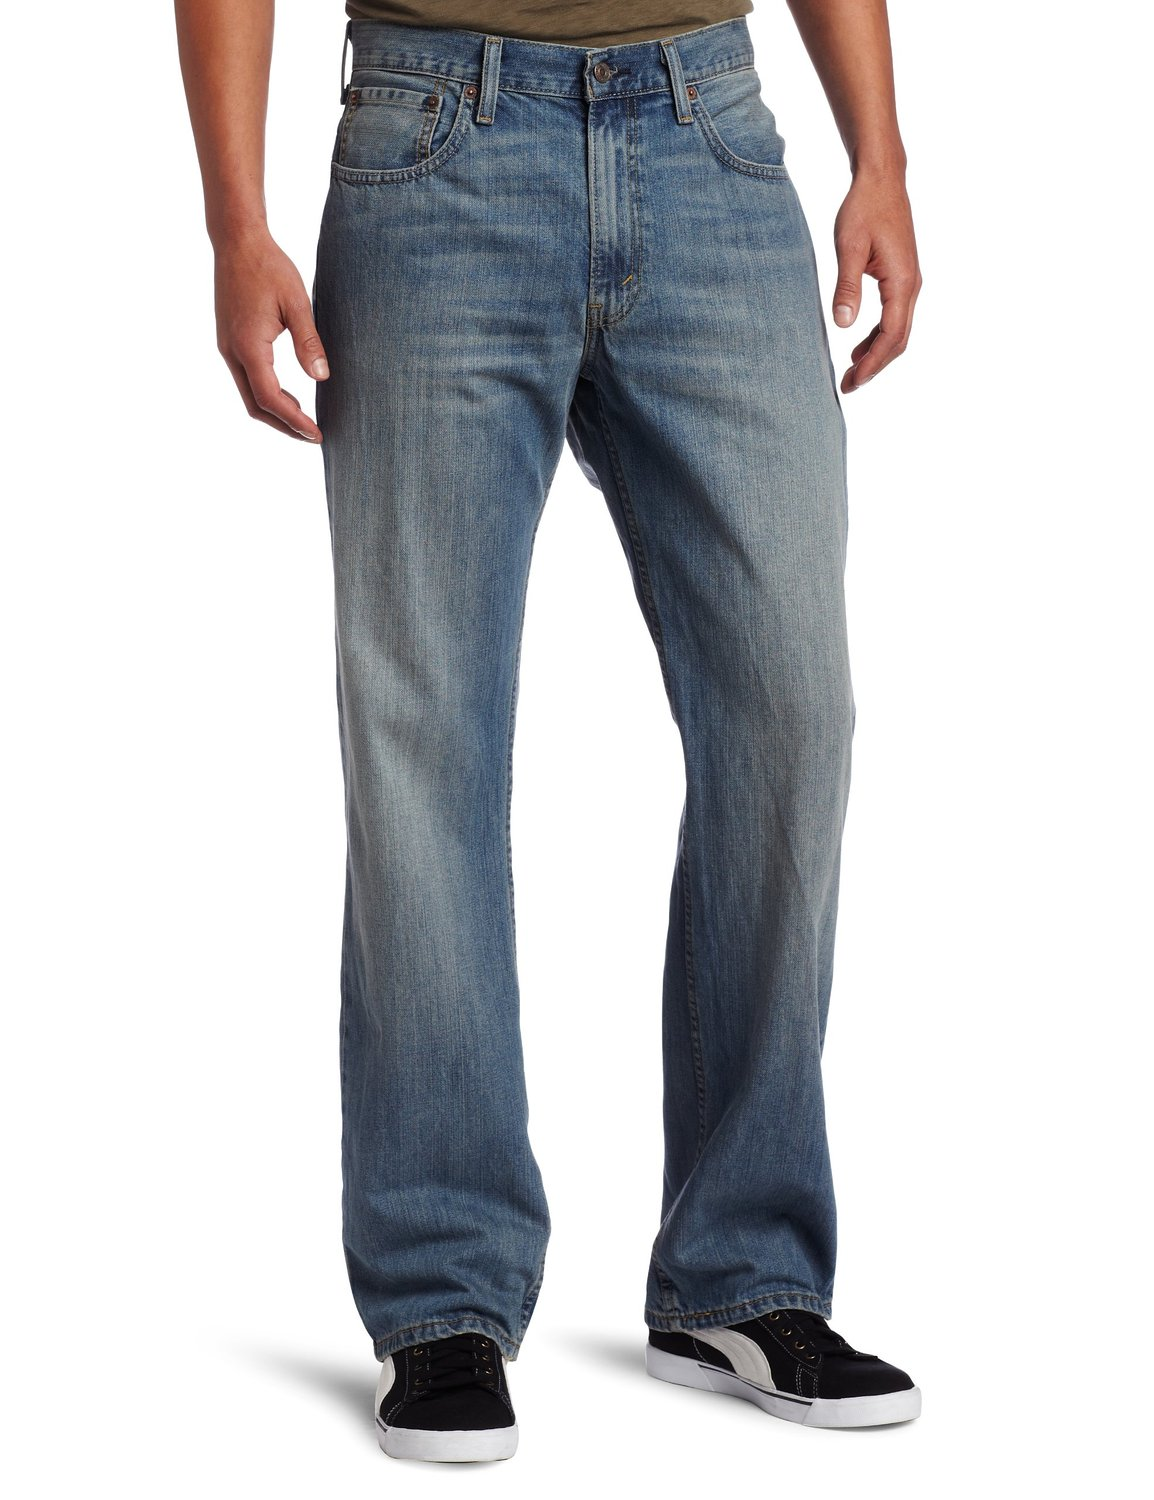 Levis 569 Loose Straight Fit Jeans